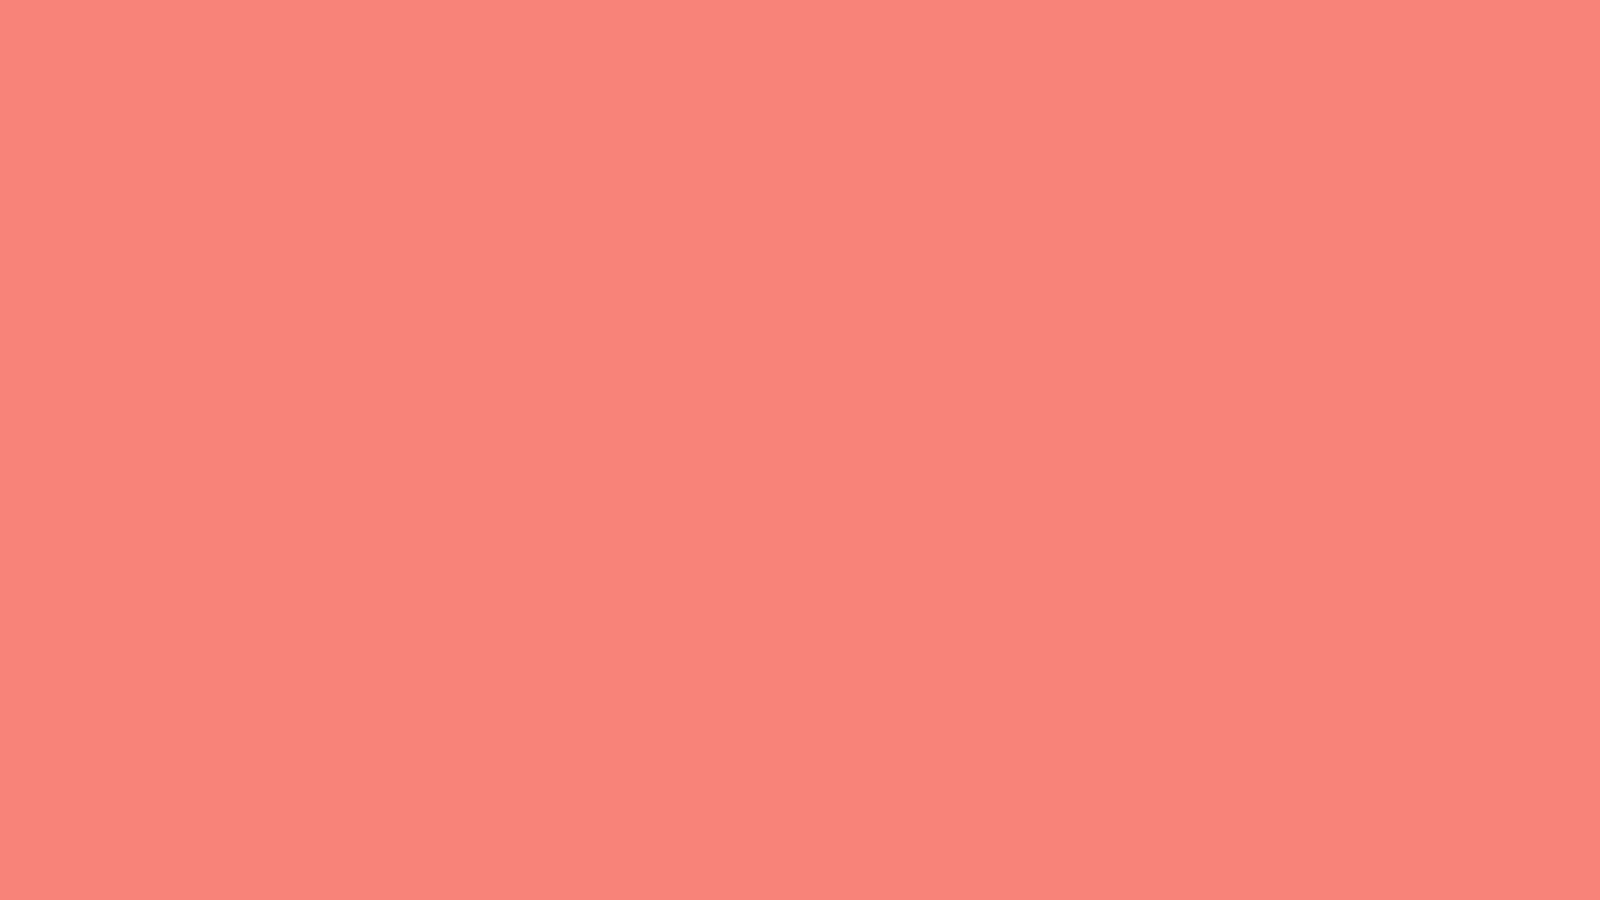 1600x900 Tea Rose Orange Solid Color Background